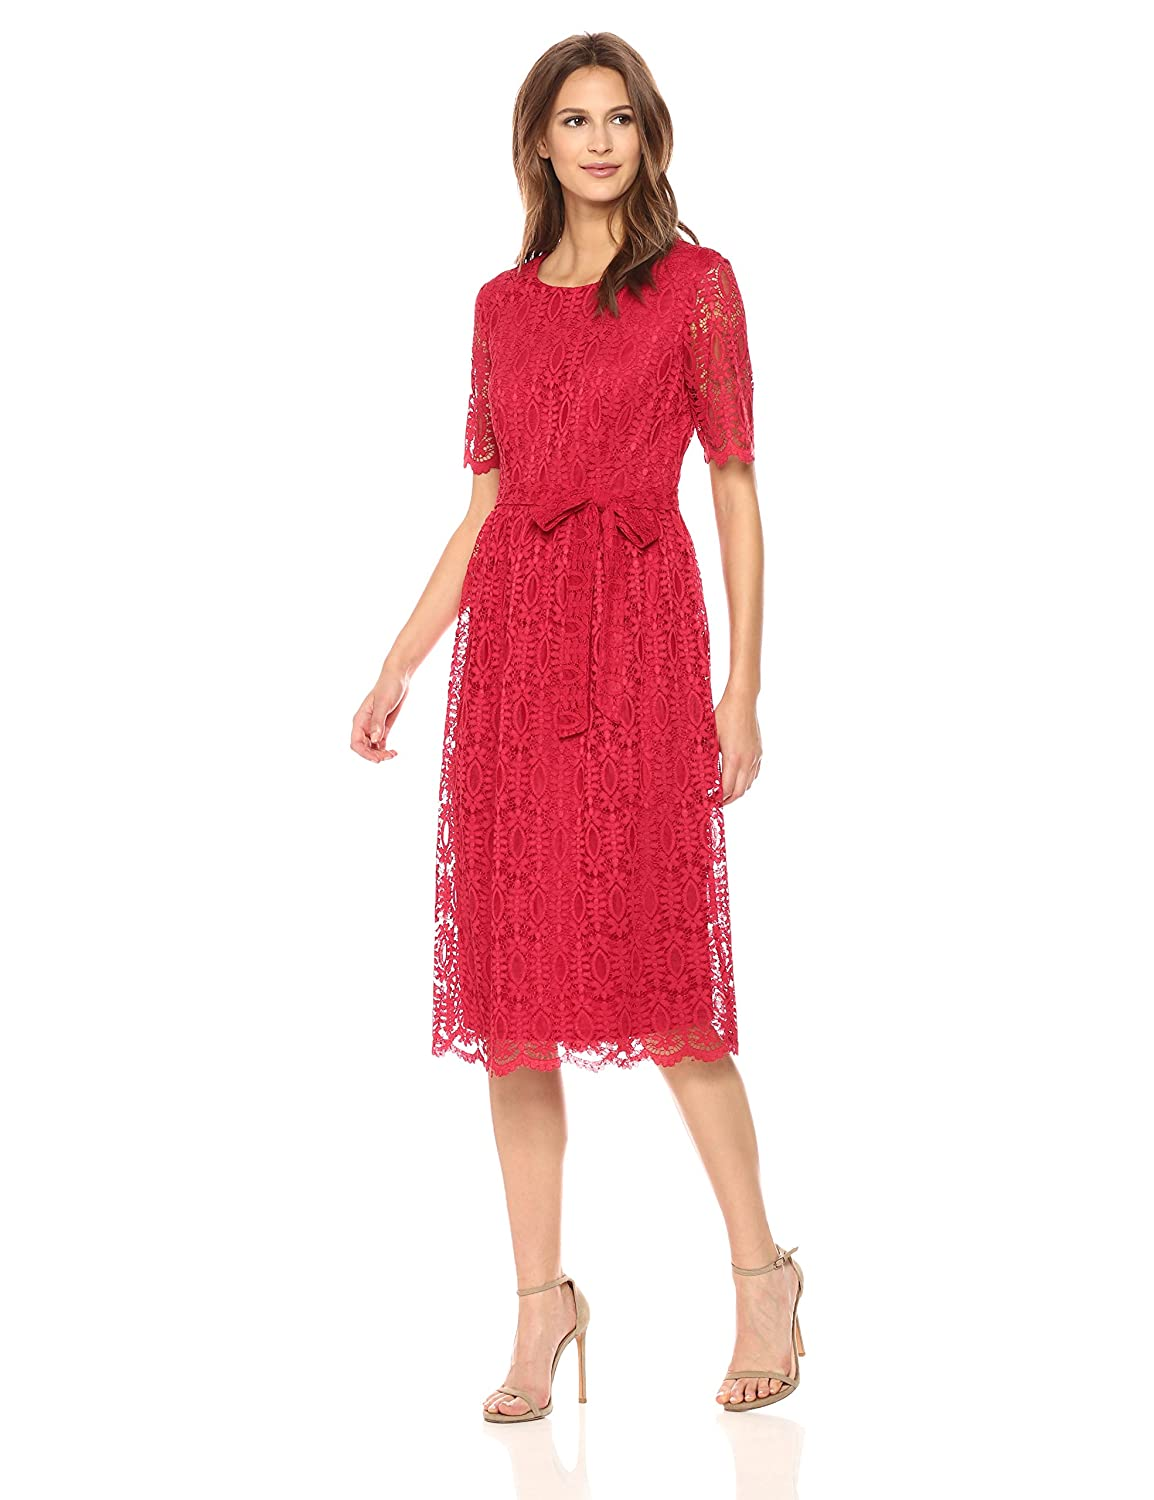 48a4e3d919 Top5  Nine West Women s Short Sleeve Lace Fit and Flare Midi Dress with  Self Sash